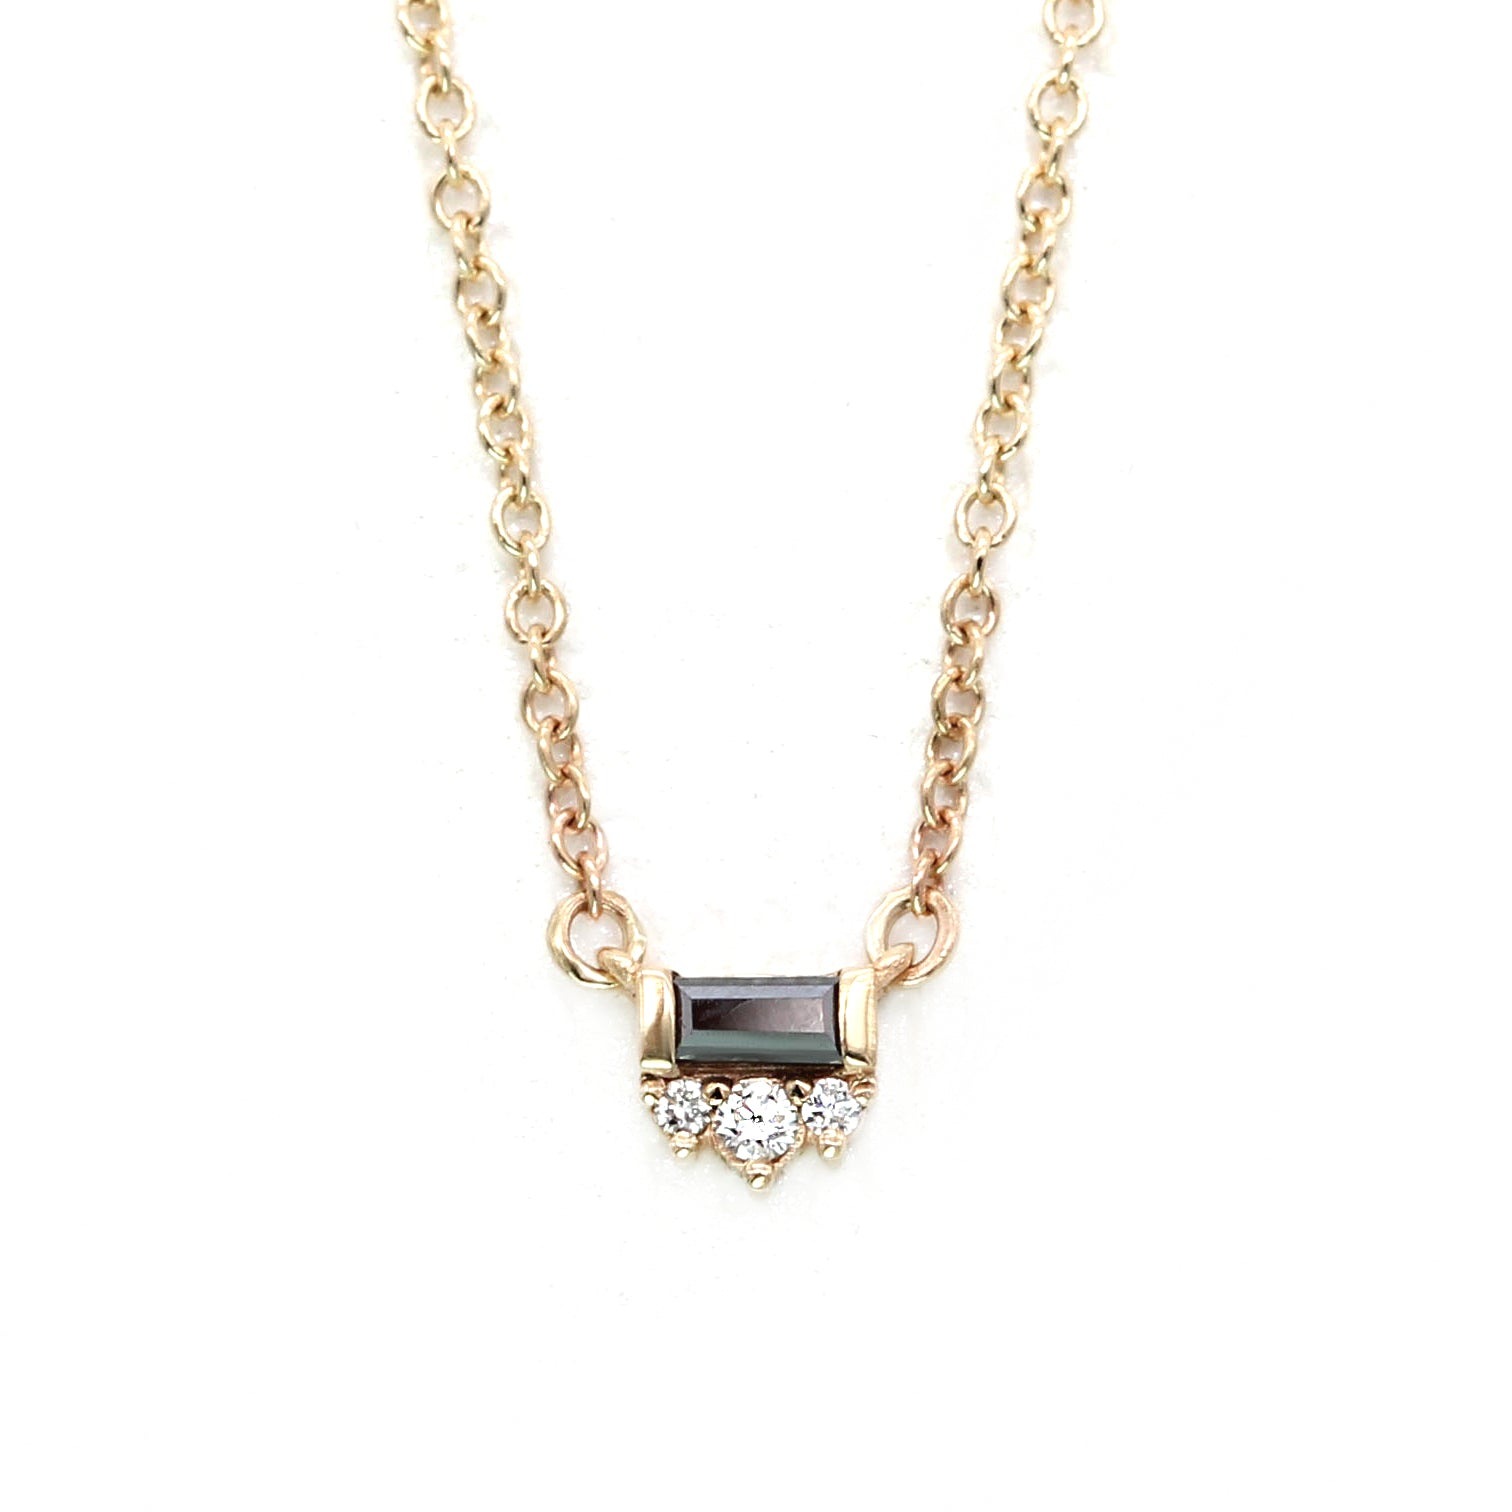 Black Tie Necklace - Baguette Black Diamond & White Diamonds - Yellow Gold